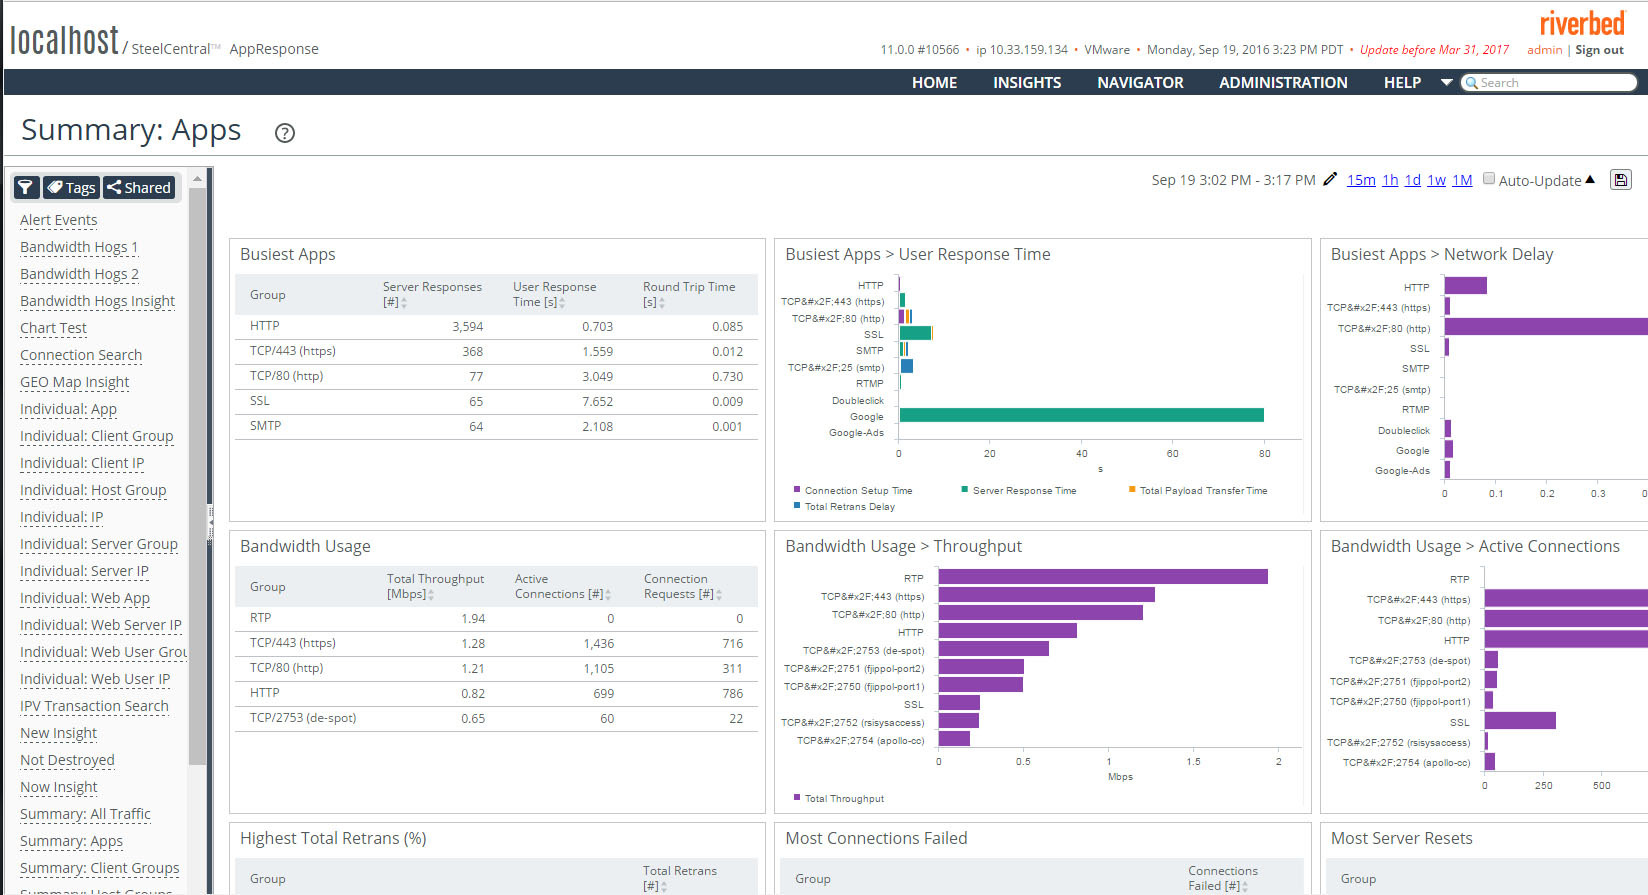 SteelCentral AppResponse 11, provides network forensics and analytics, application analytics and end-user experience monitoring in a single, rich and easy-to-adopt solution. (Graphic: Business Wire)